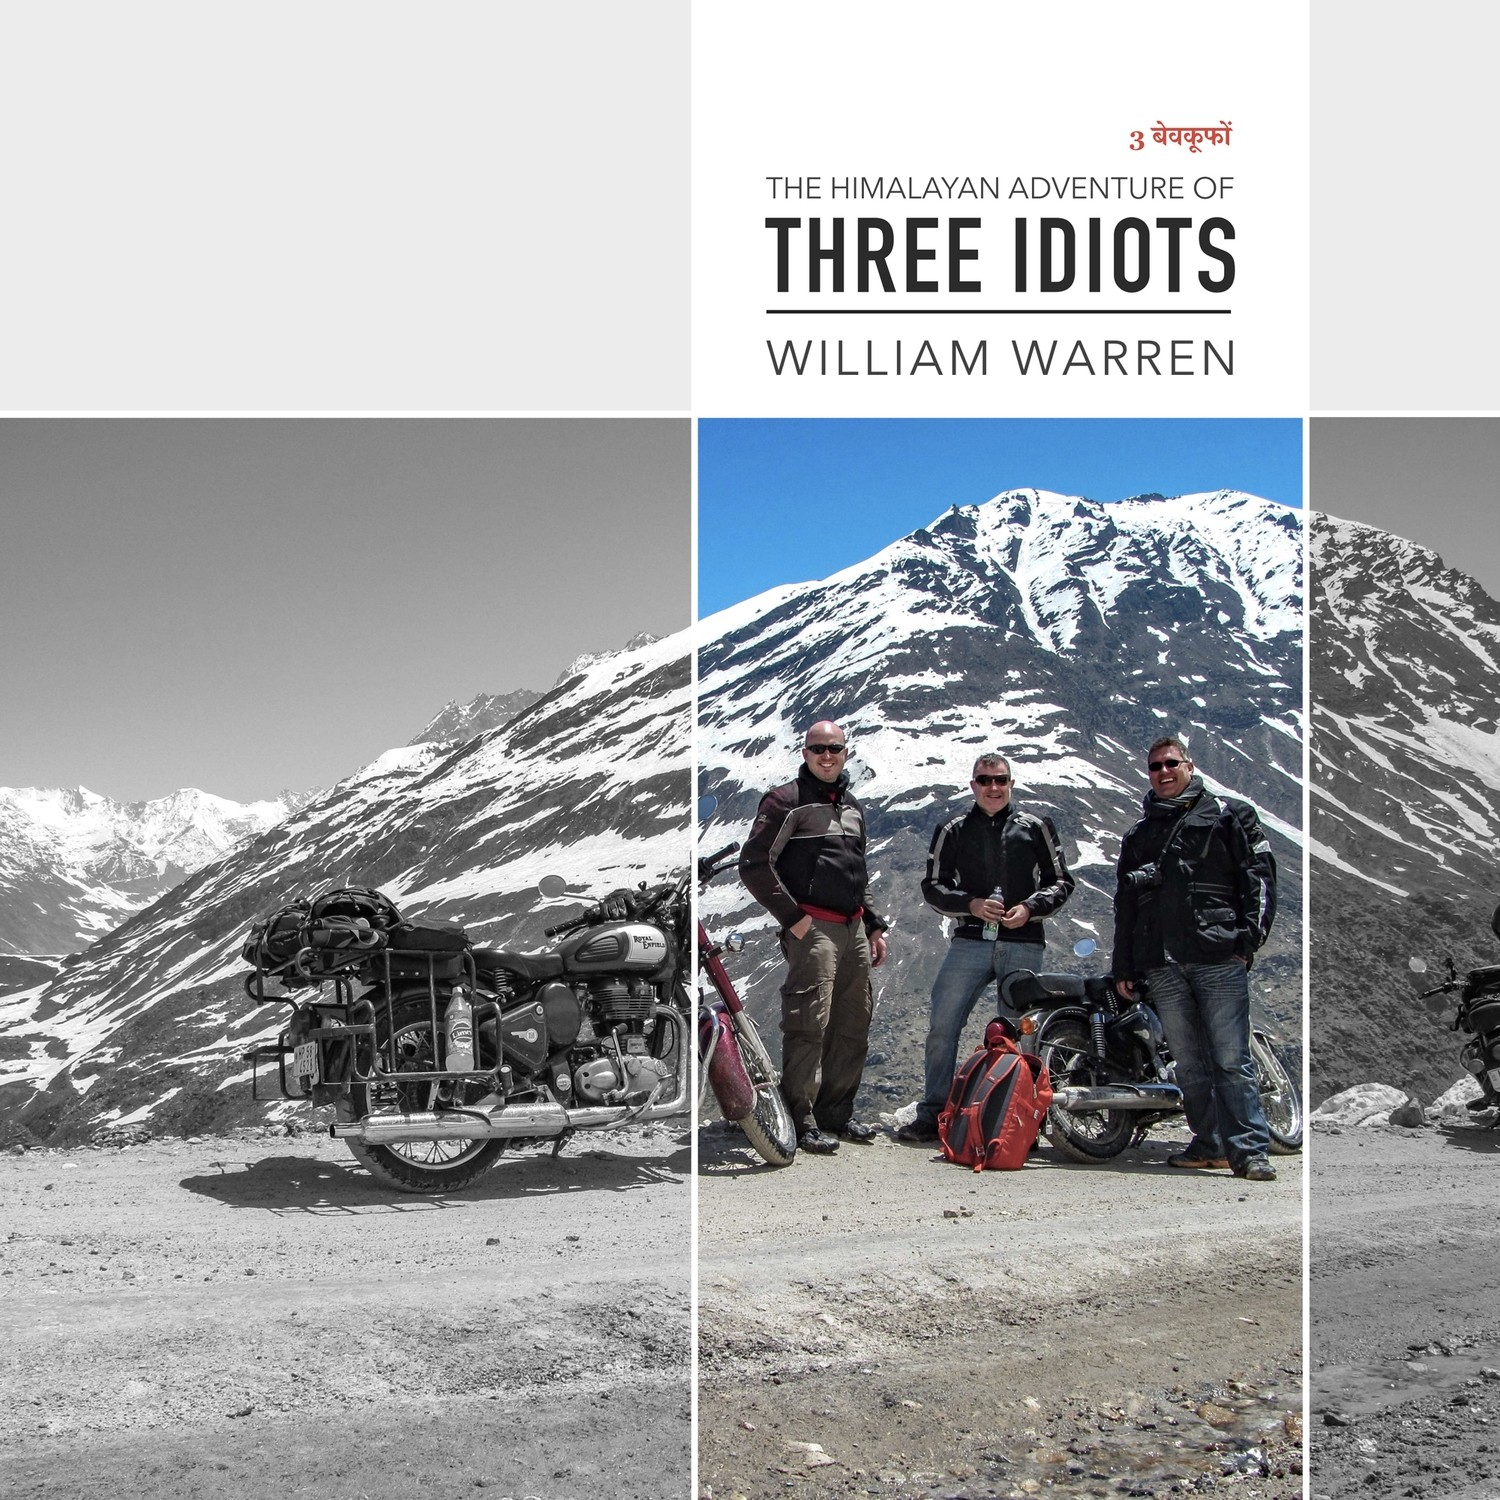 The Himalayan Adventure of Three Idiots - 300mm x 300mm Luxury Coffee Table Hardcover (1kg)